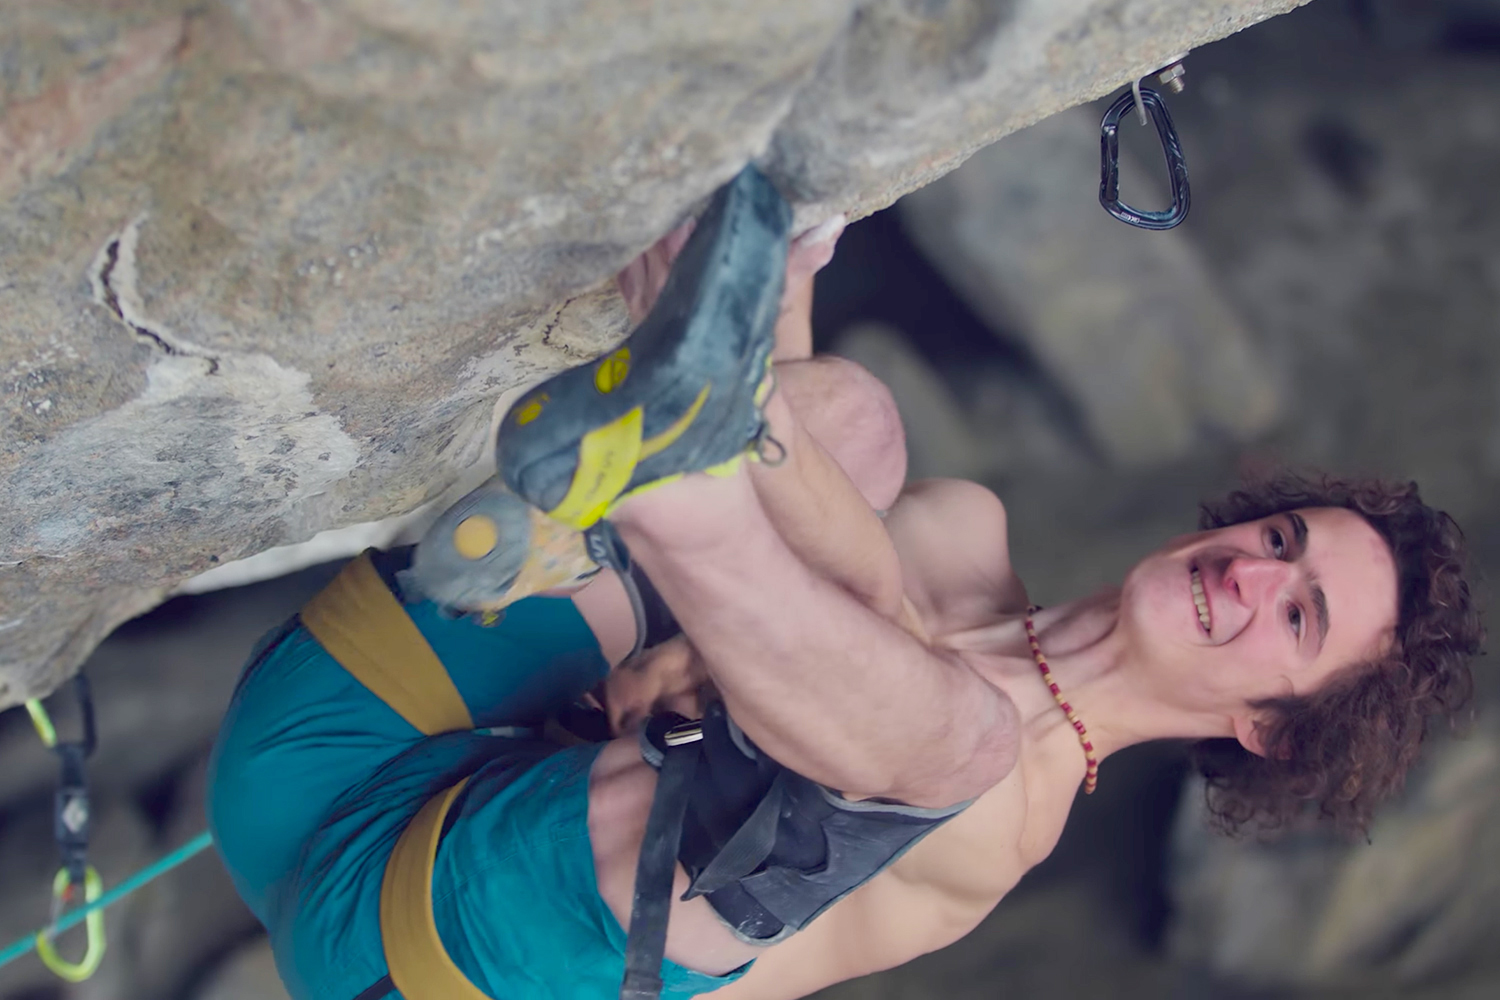 Adam Ondra Sends Worlds Hardest Rock Climb Project Hard